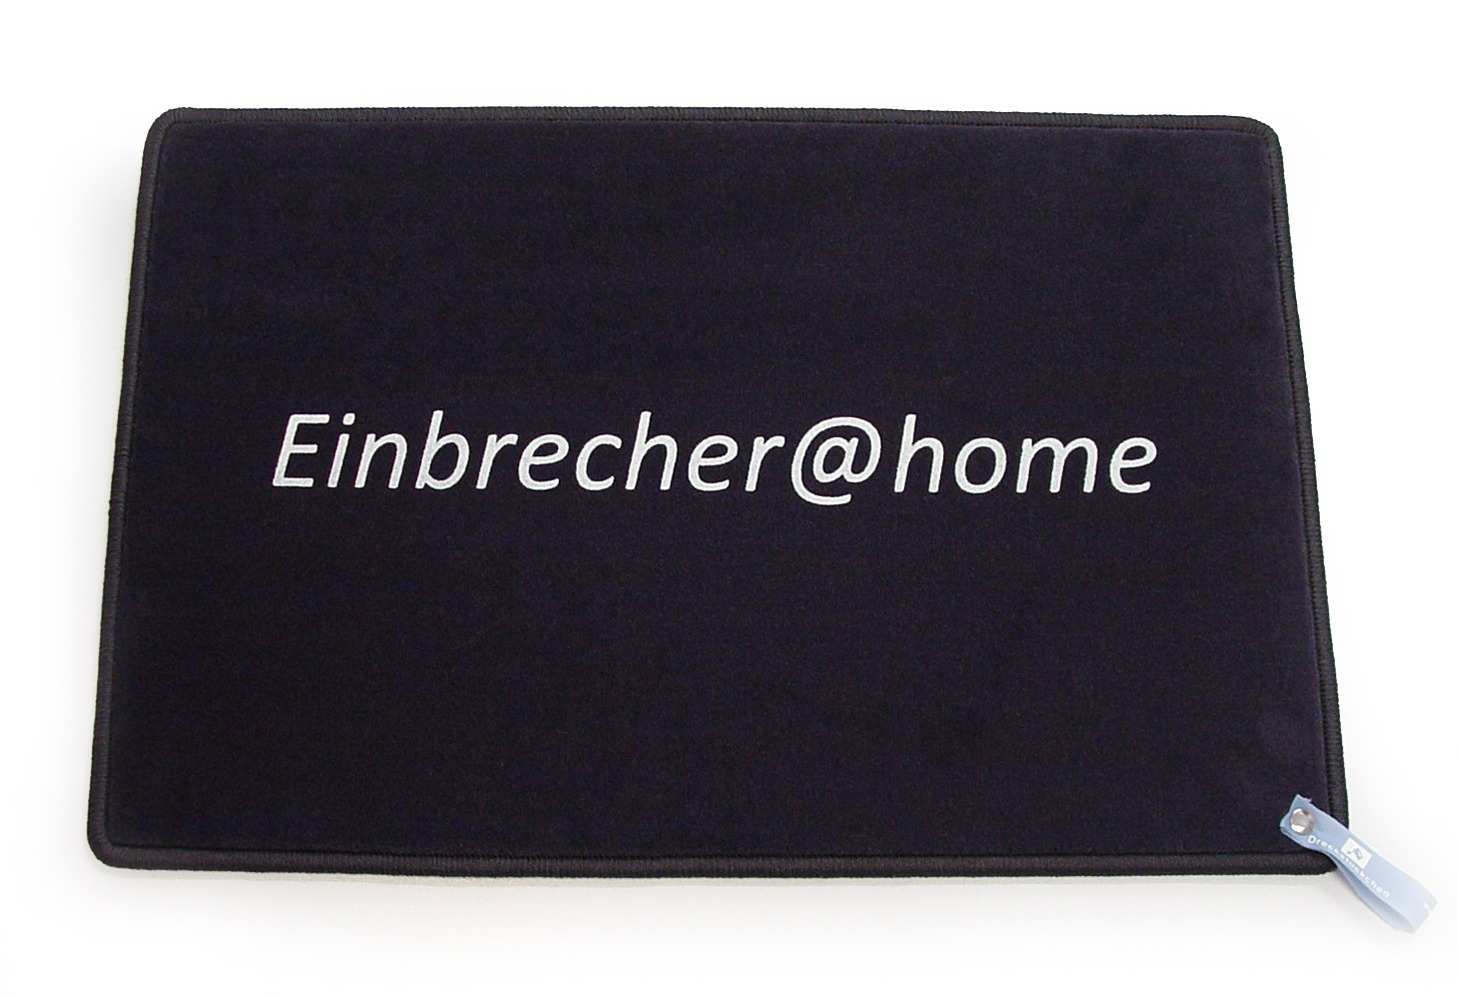 Einbrecher at home